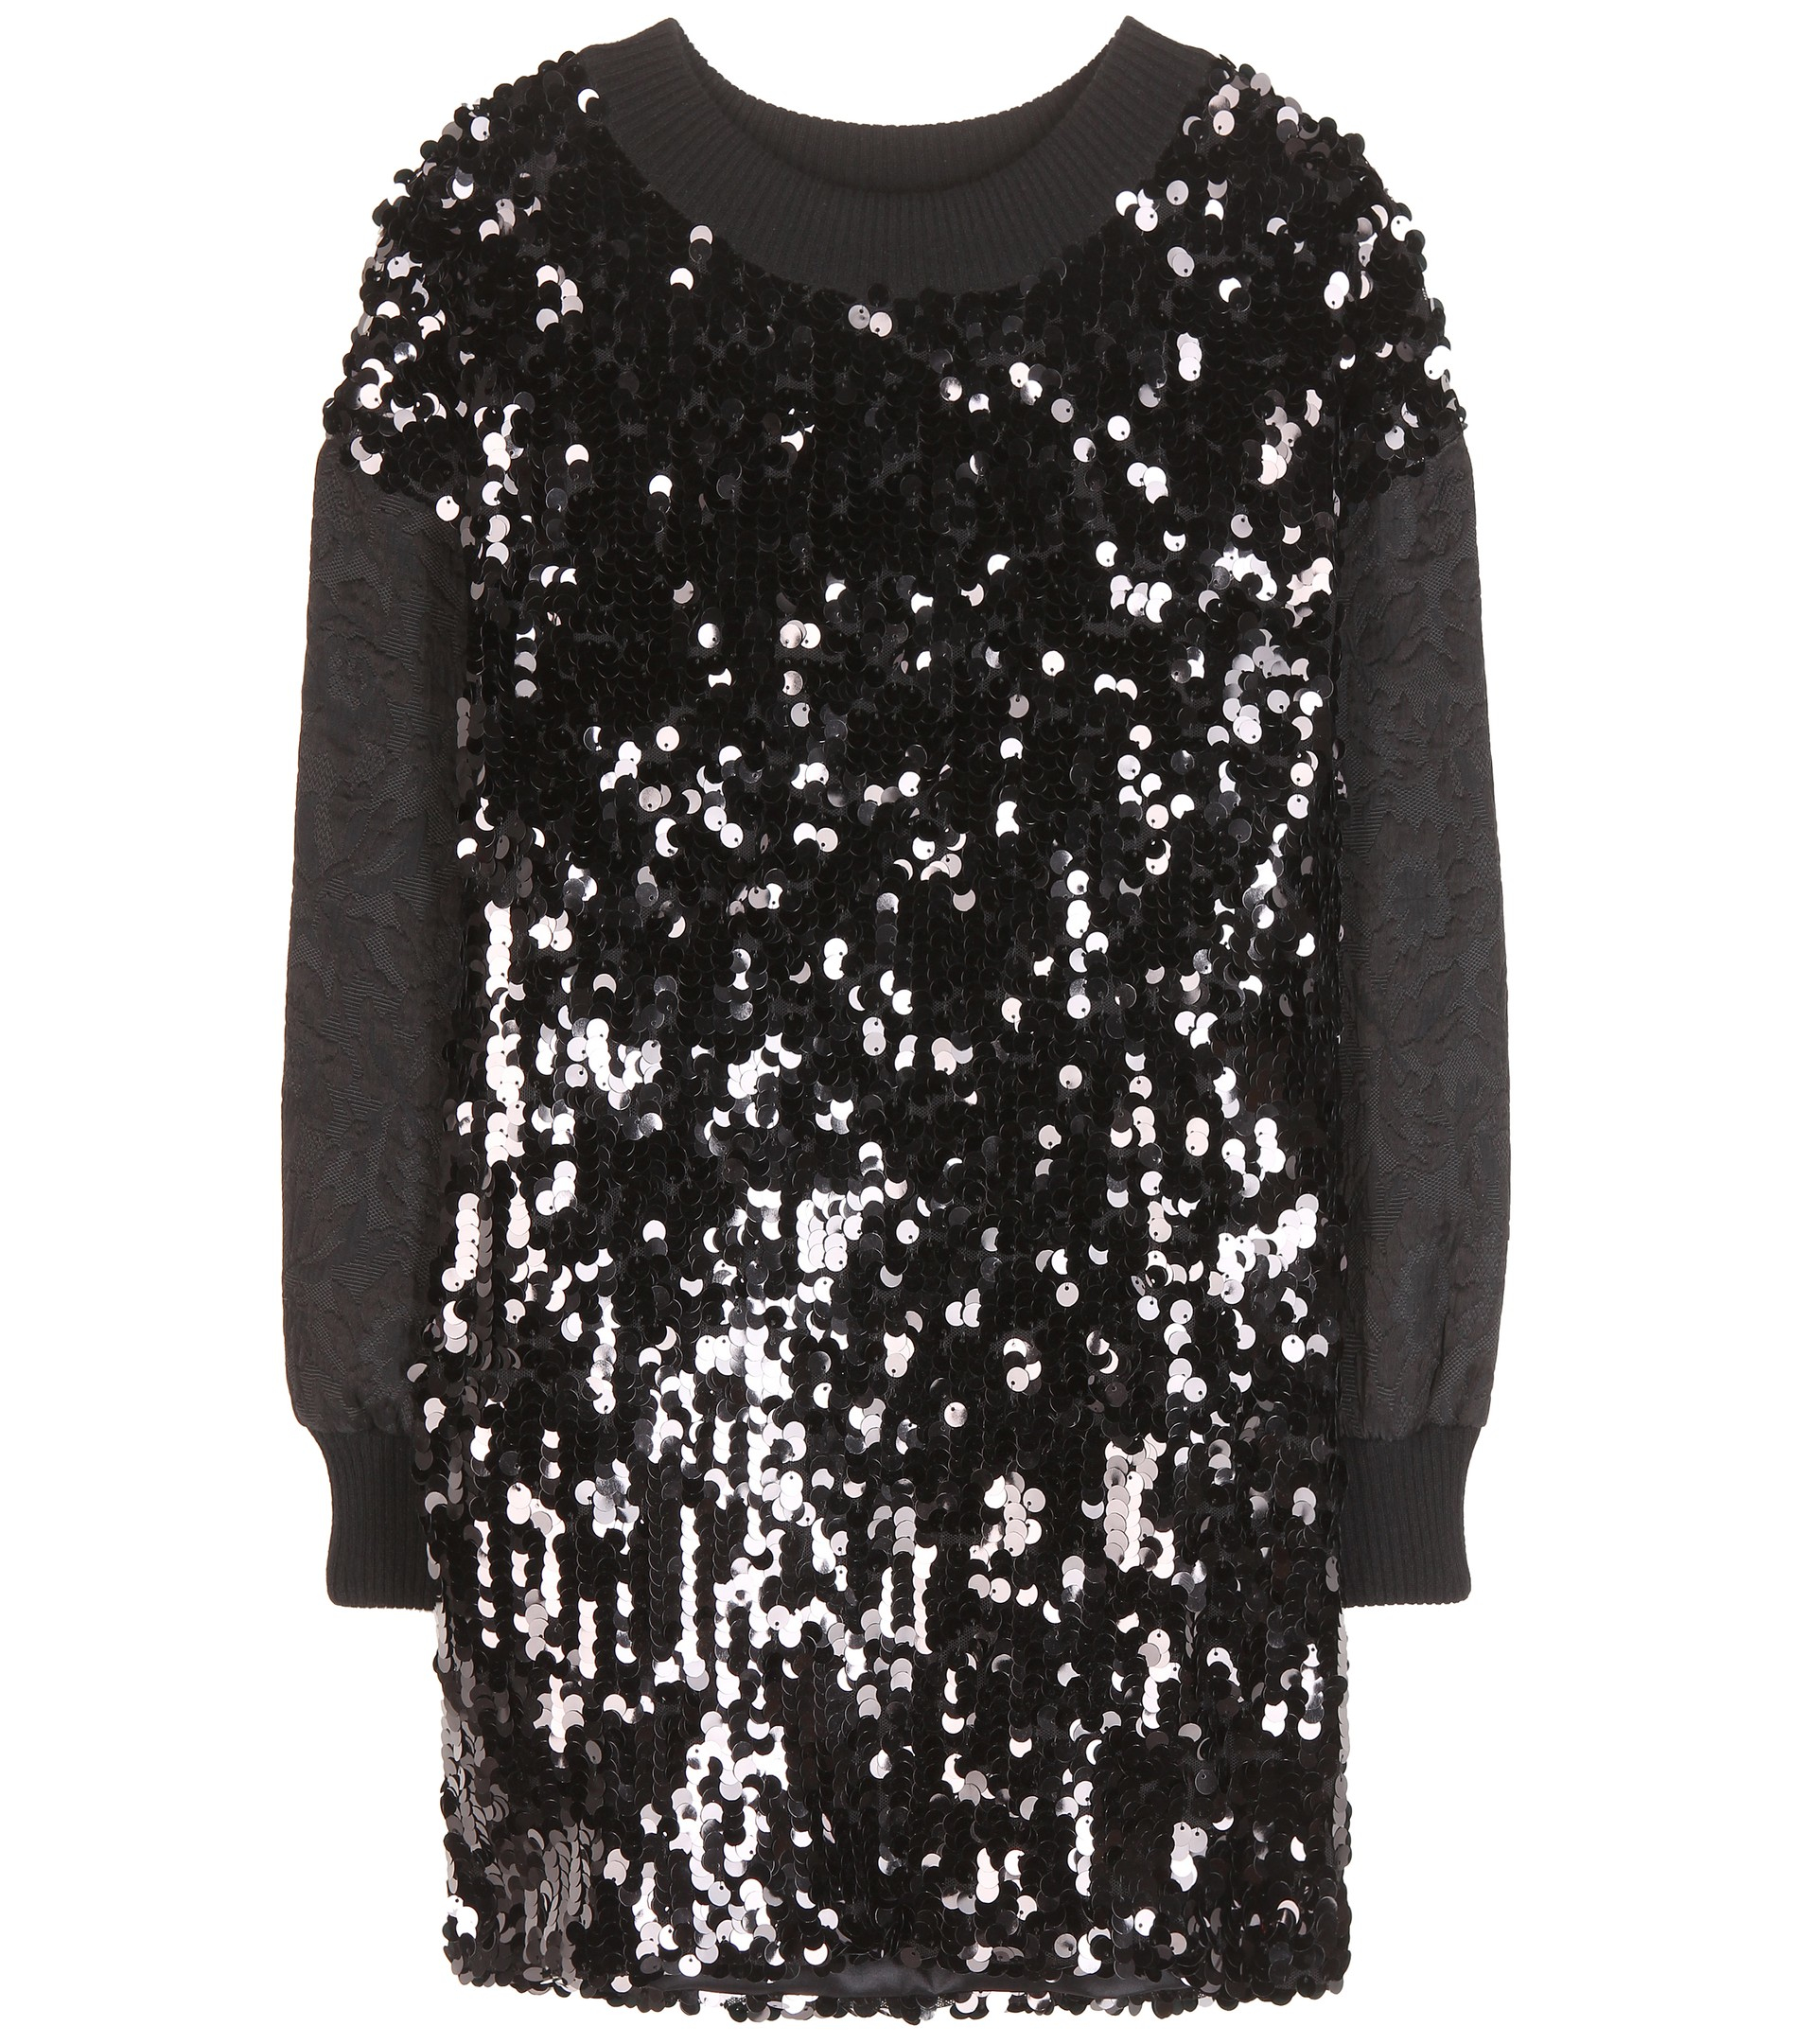 Dolce & gabbana Sequin-embellished Sweater in Black | Lyst